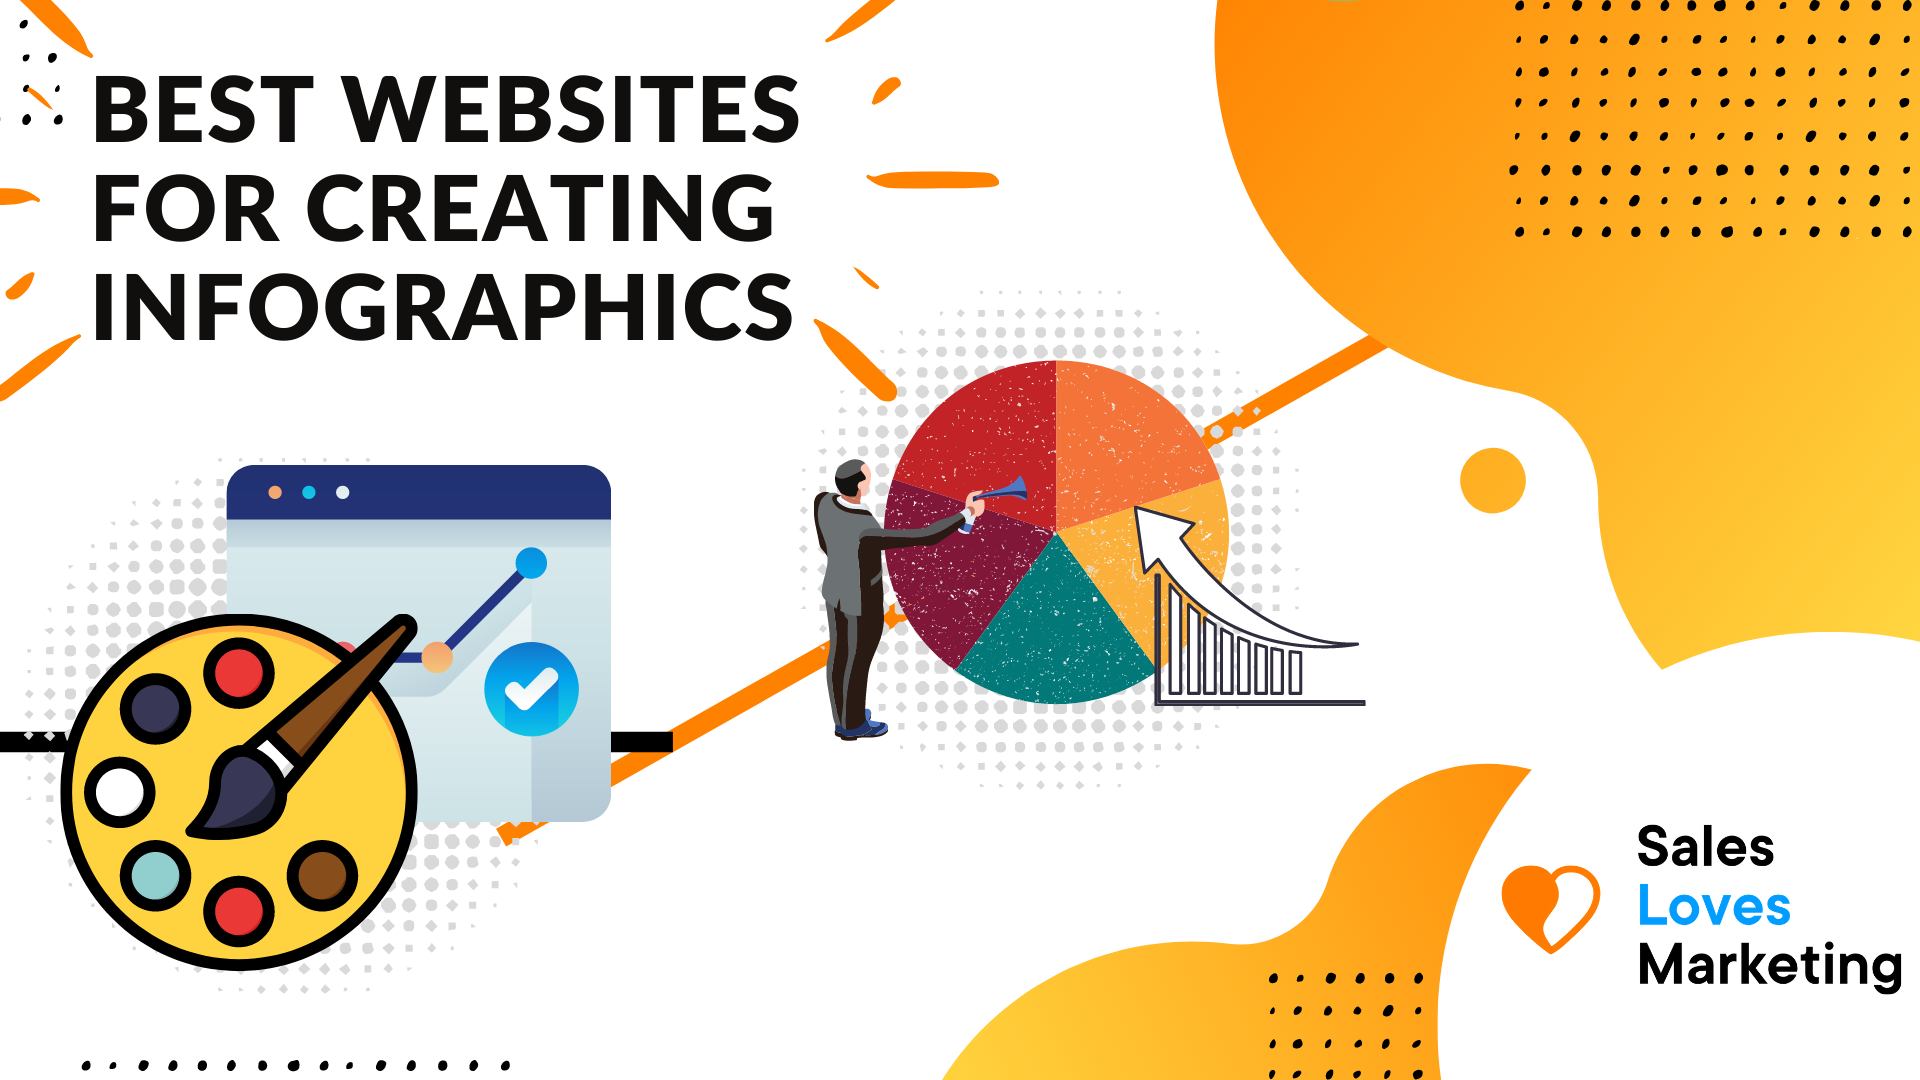 What are the best websites to create infographics